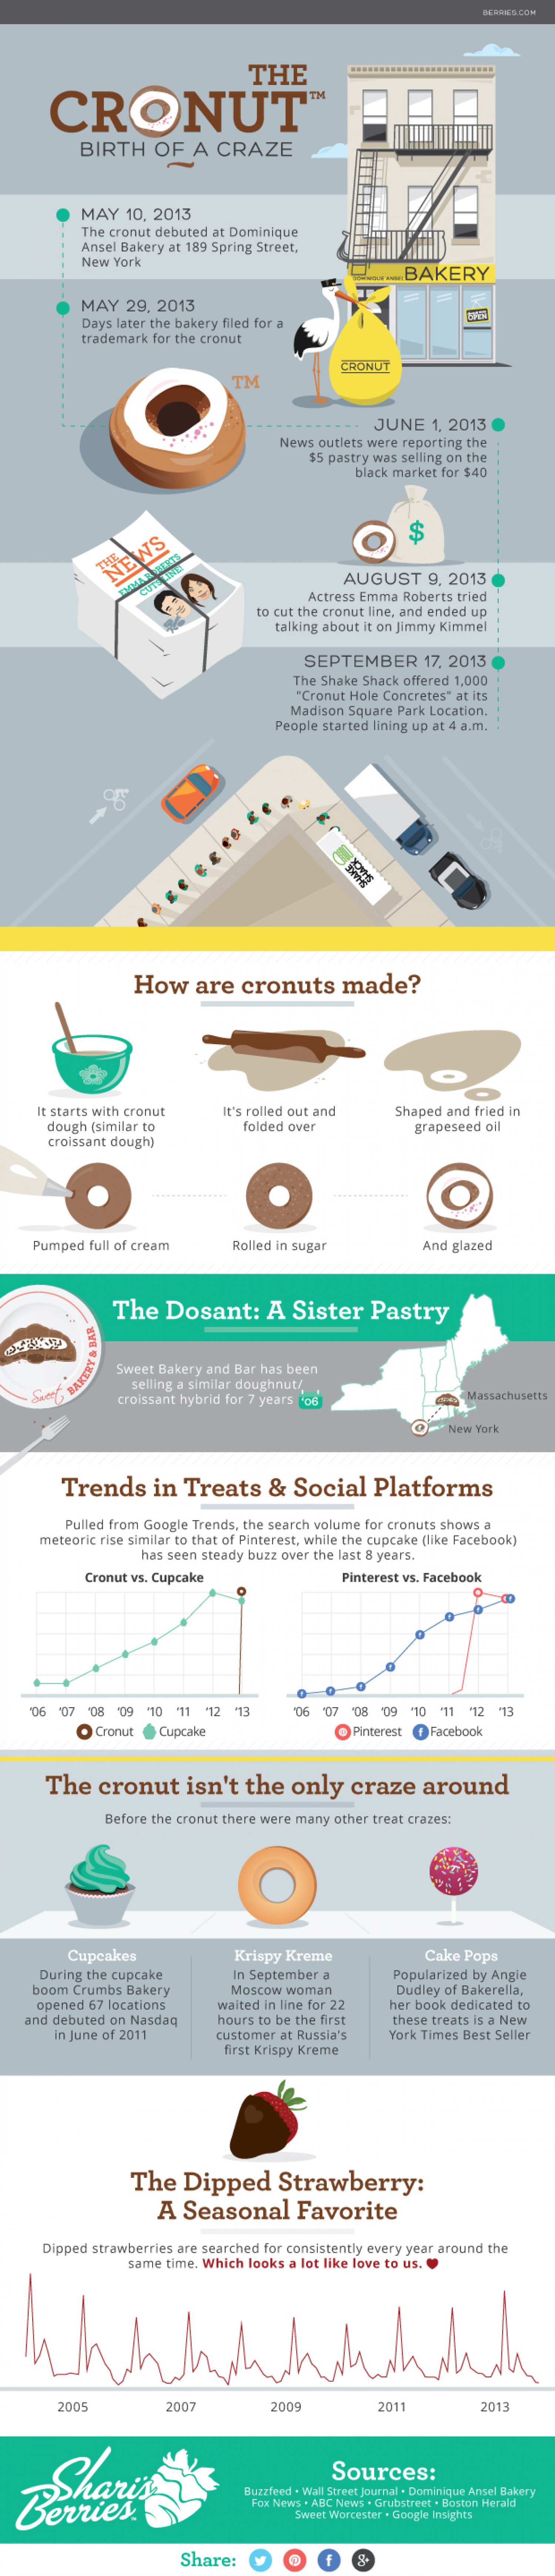 The Birth of the Cronut Craze Infographic